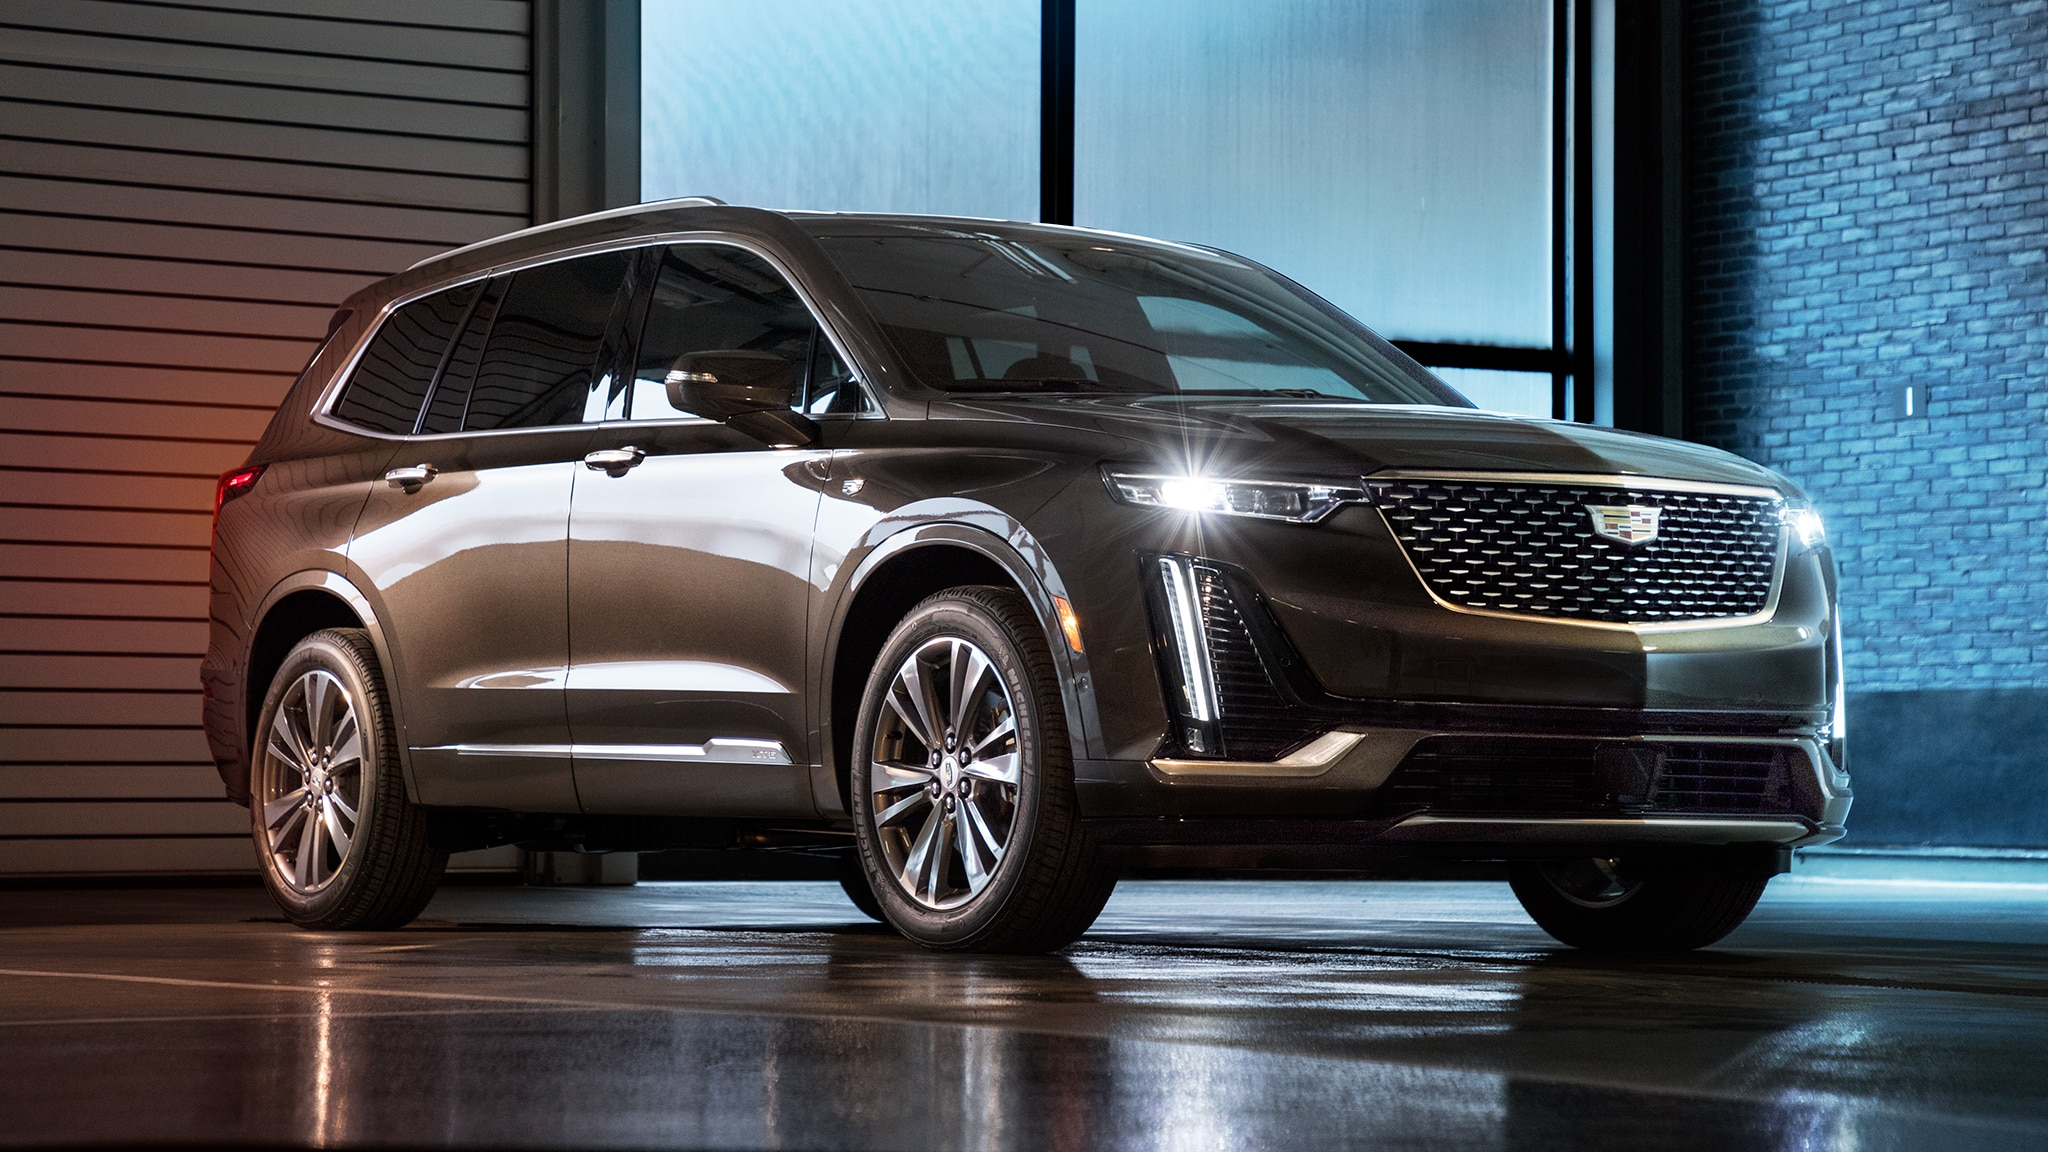 Cadillac Xt6 Reviews Research New Used Models Motortrend